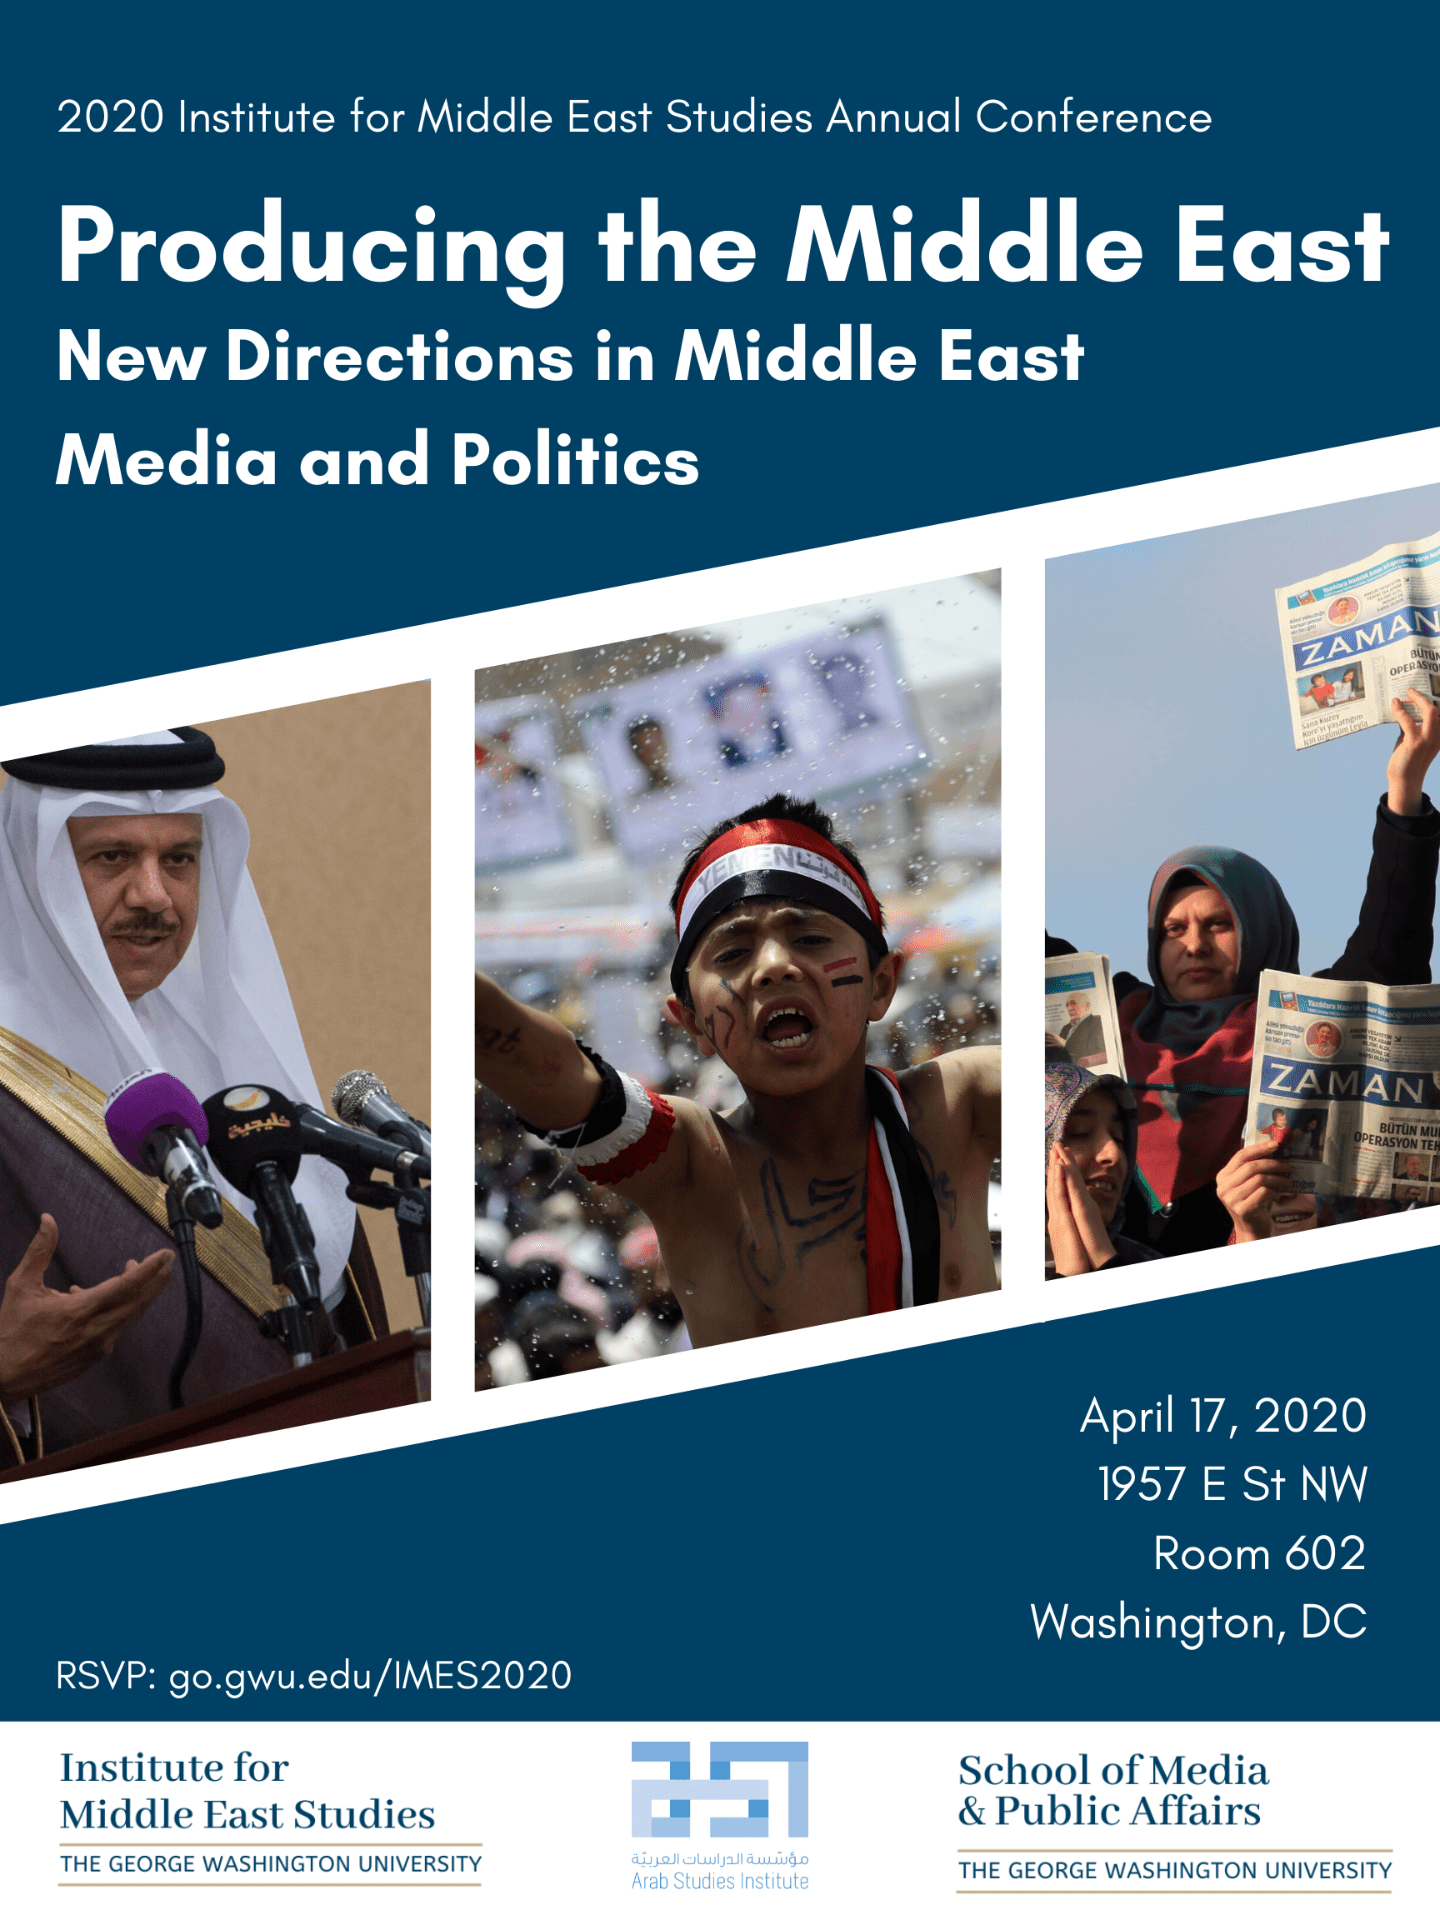 Producing the Region New Directions in Middle East Media and Politics